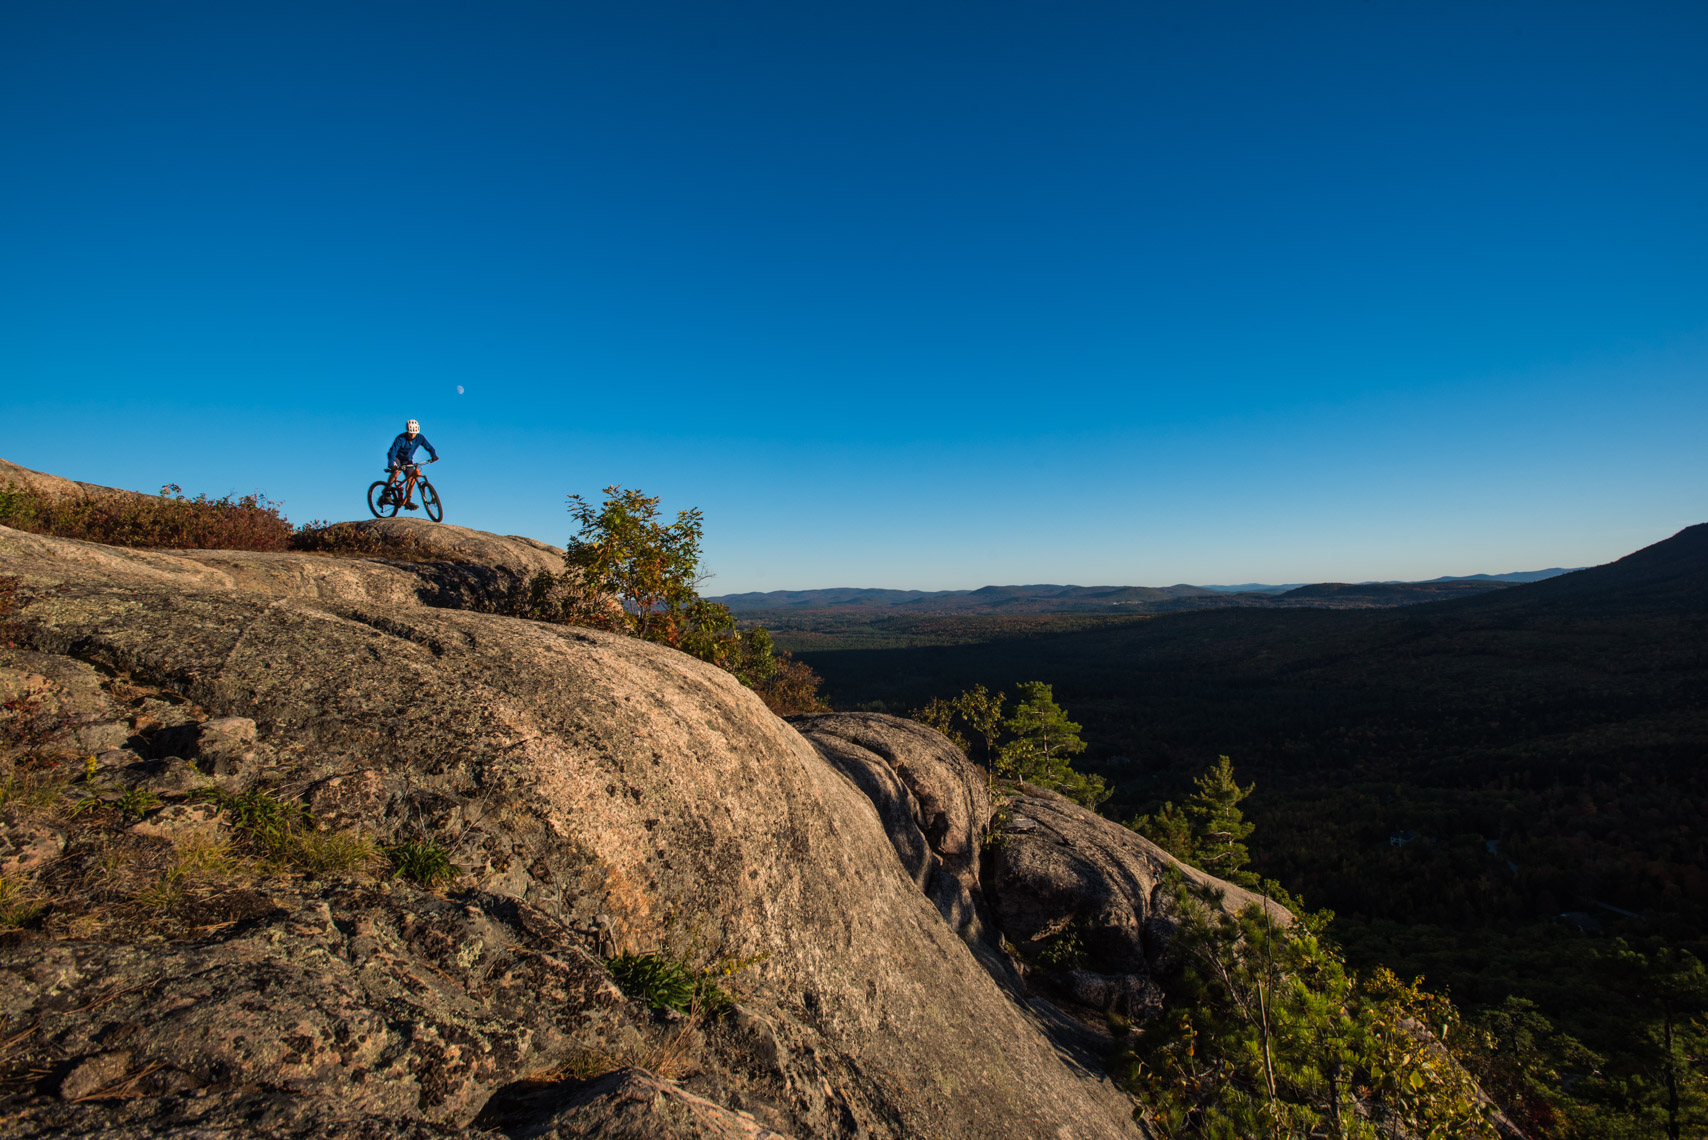 Mountain biking on Whitehorse Ledge, New Hampshire.